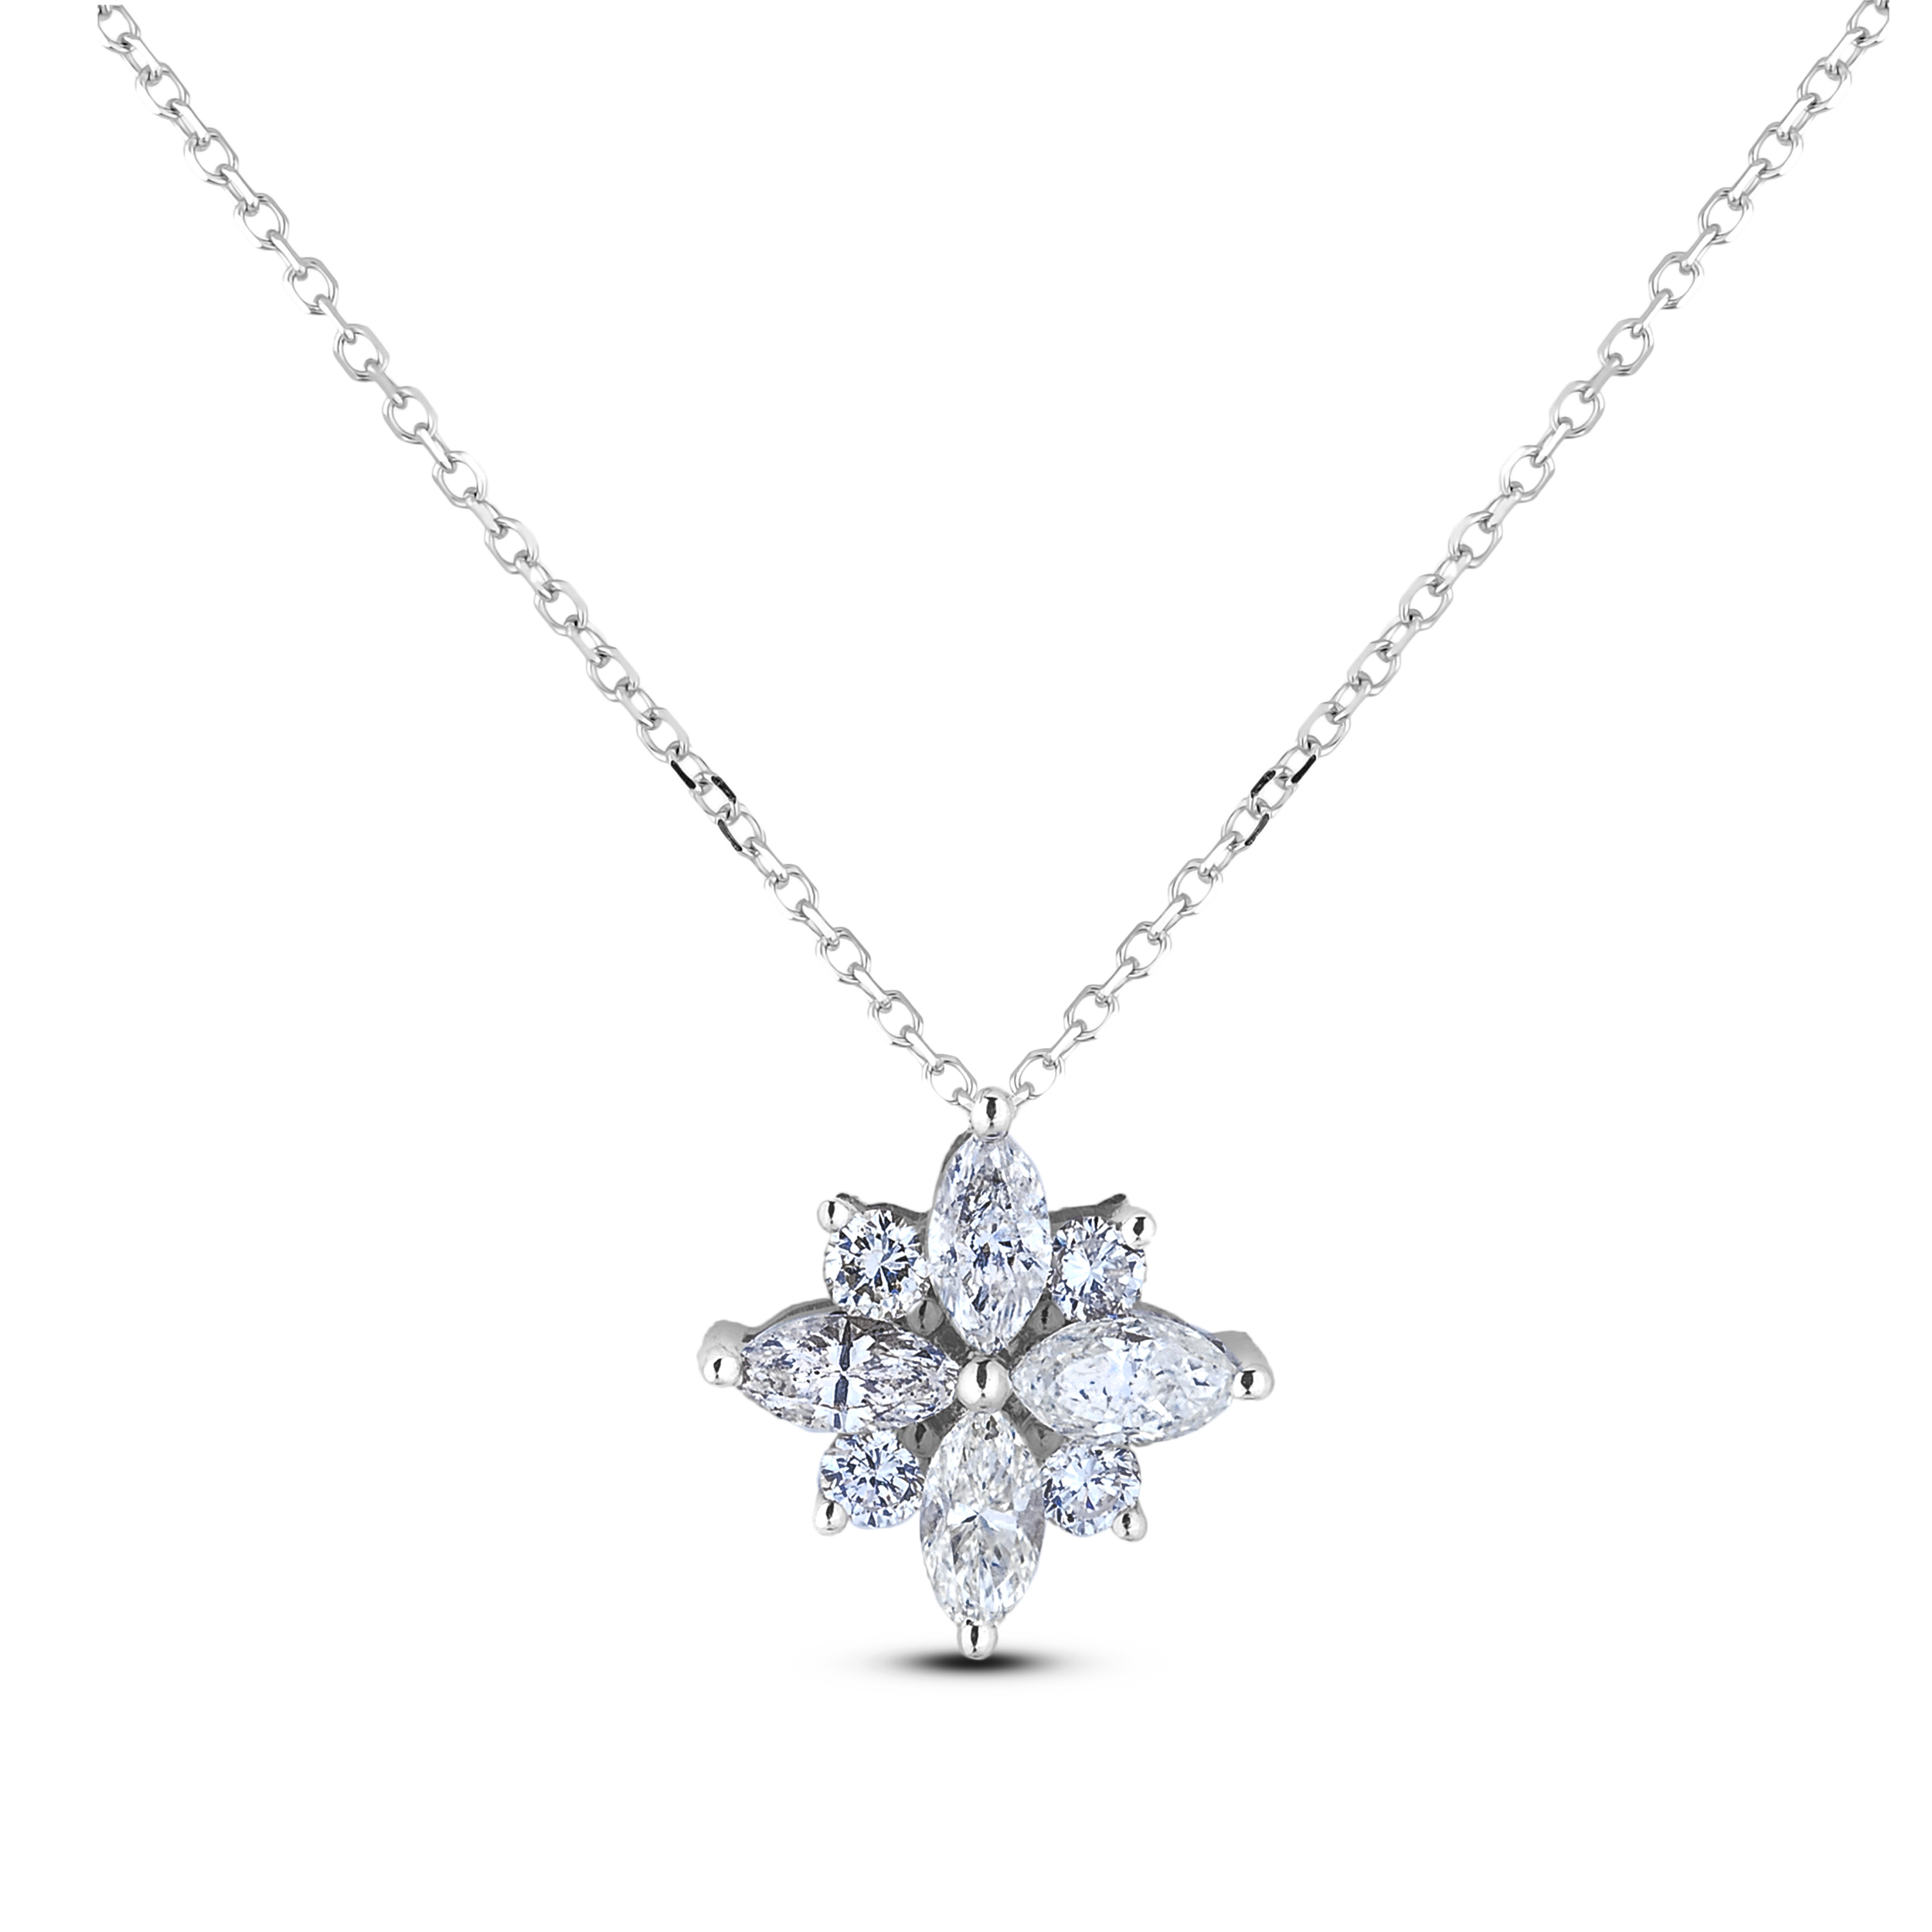 Diamond Pendants LNG-SP1695 (Pendants)